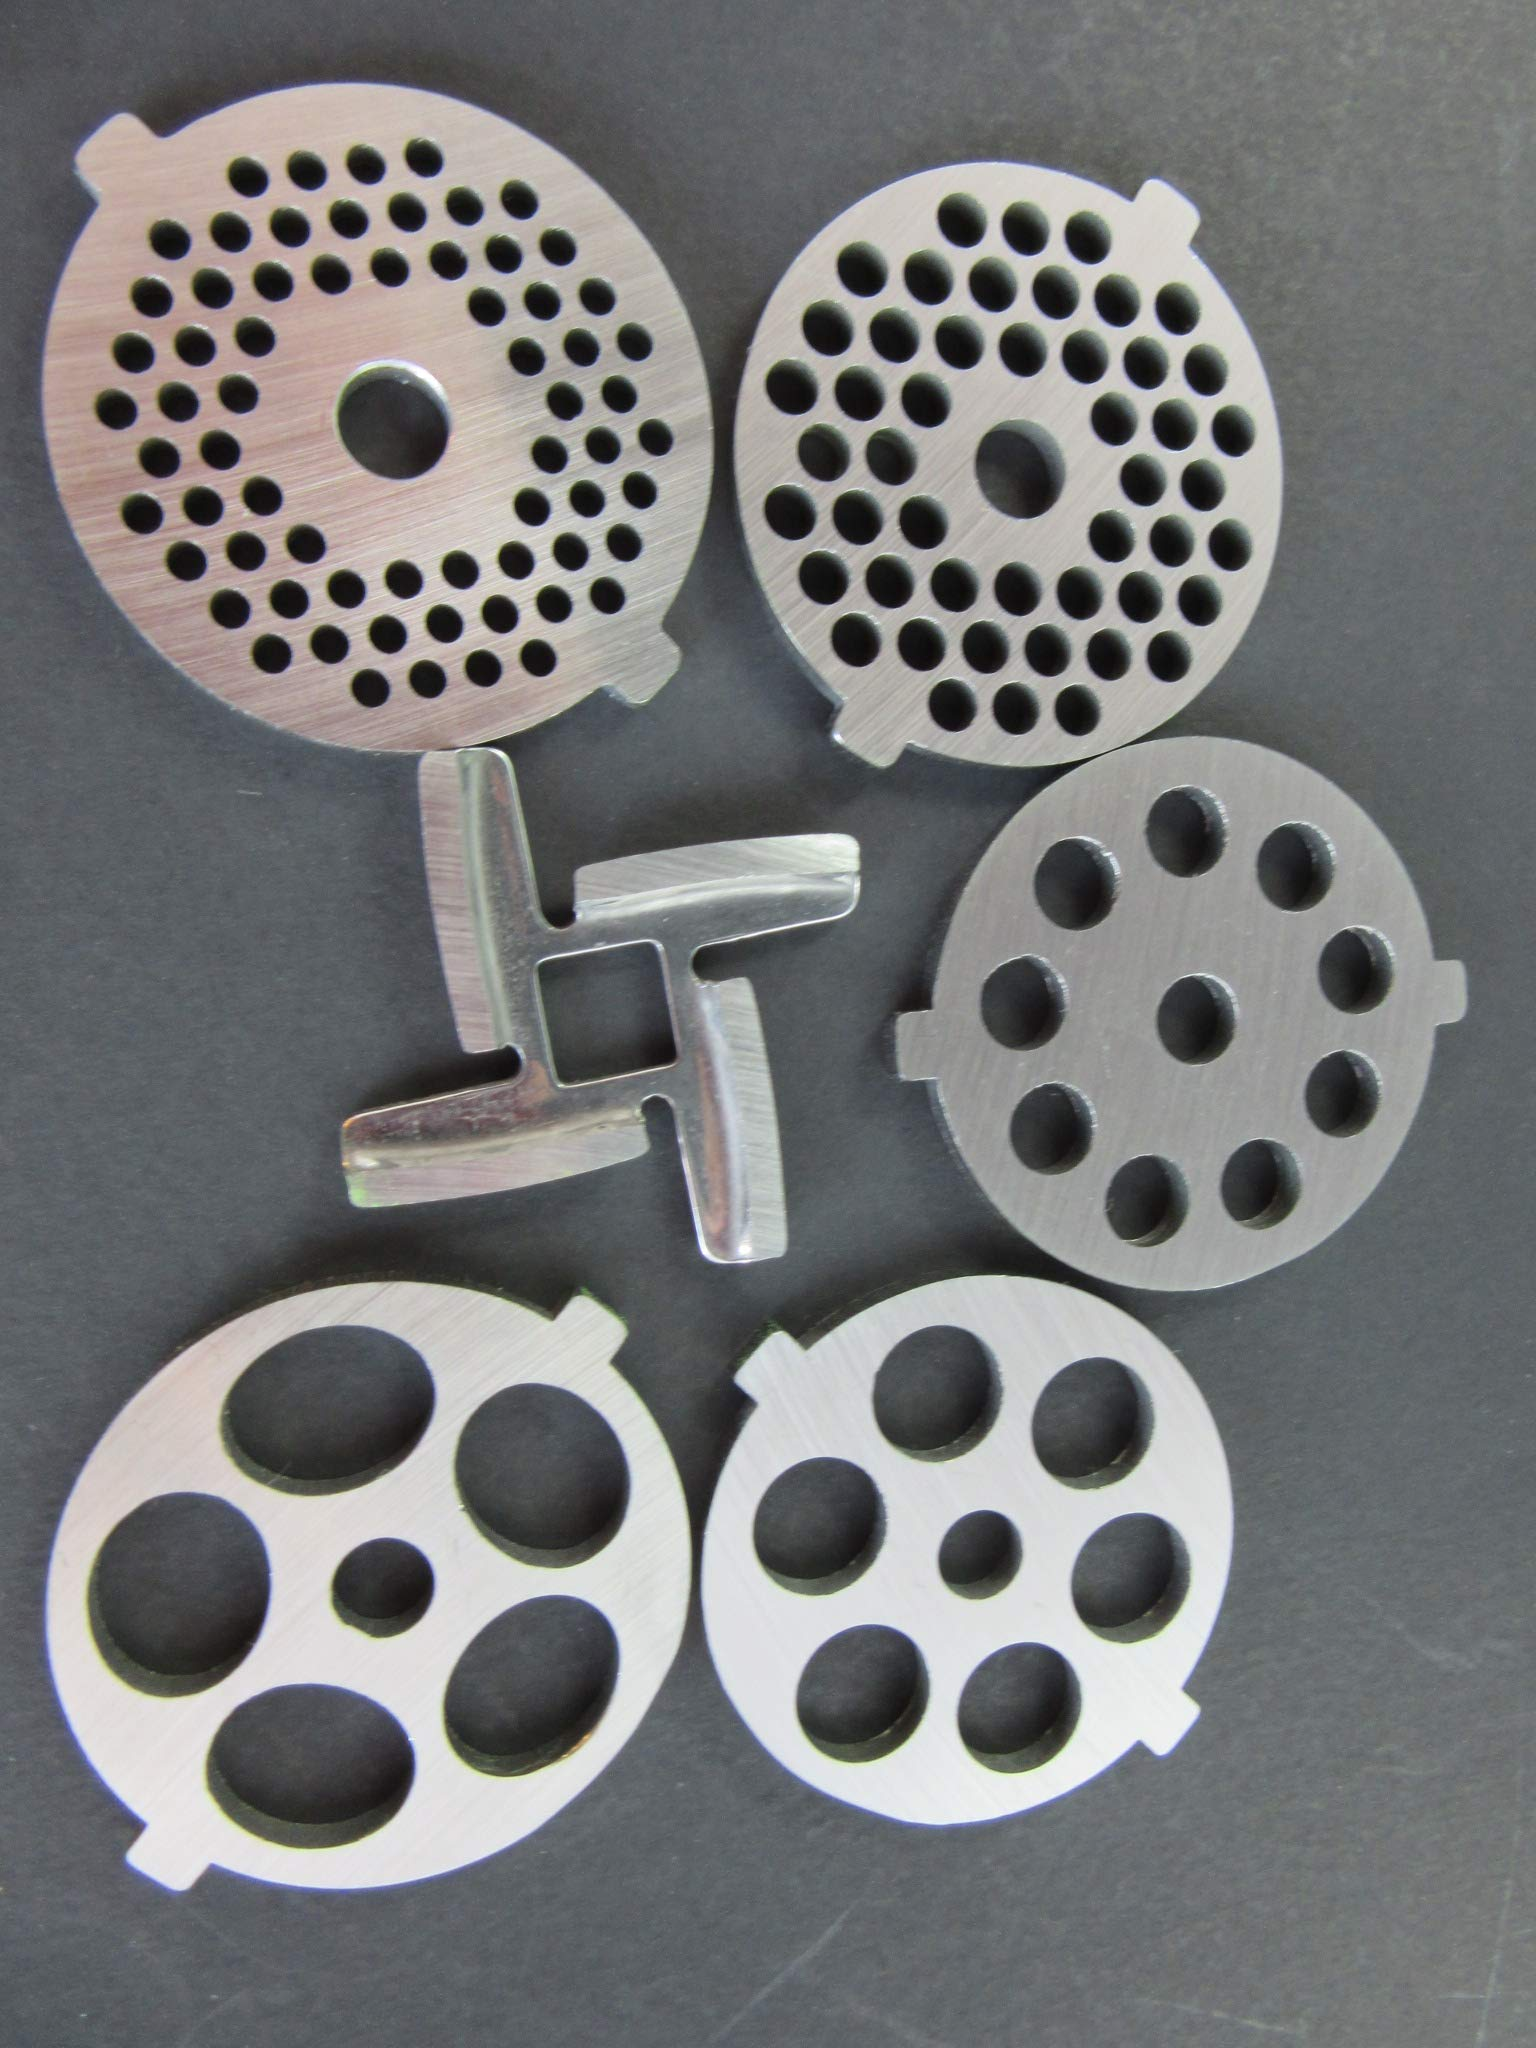 6 Piece Set Grinding Plate Discs and Knife for the Kitchenaid Mixer FGA Food Chopper and Meat Grinding